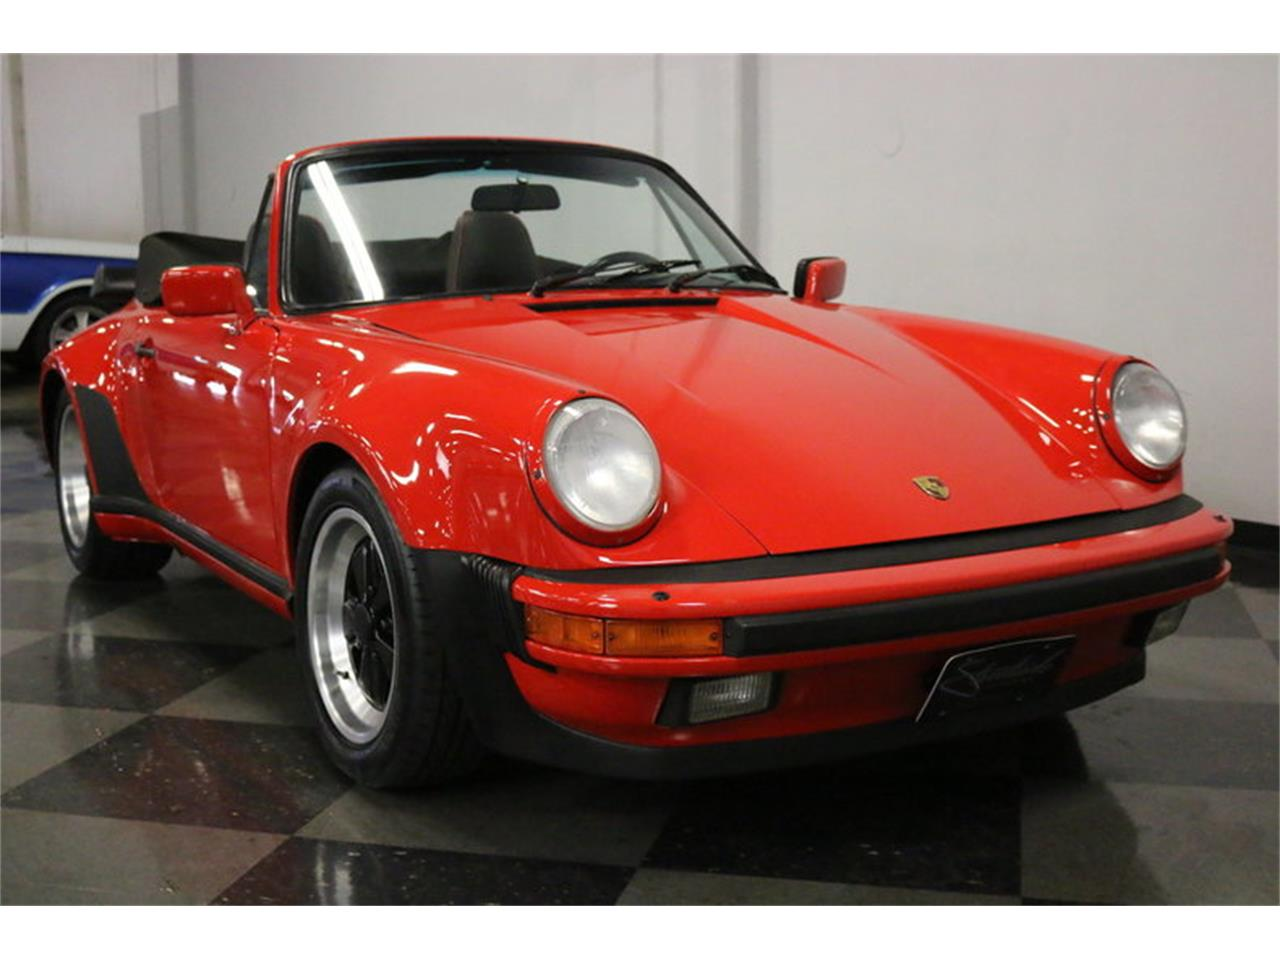 Large Picture of 1988 Porsche 911 located in Texas Offered by Streetside Classics - Dallas / Fort Worth - LBK3